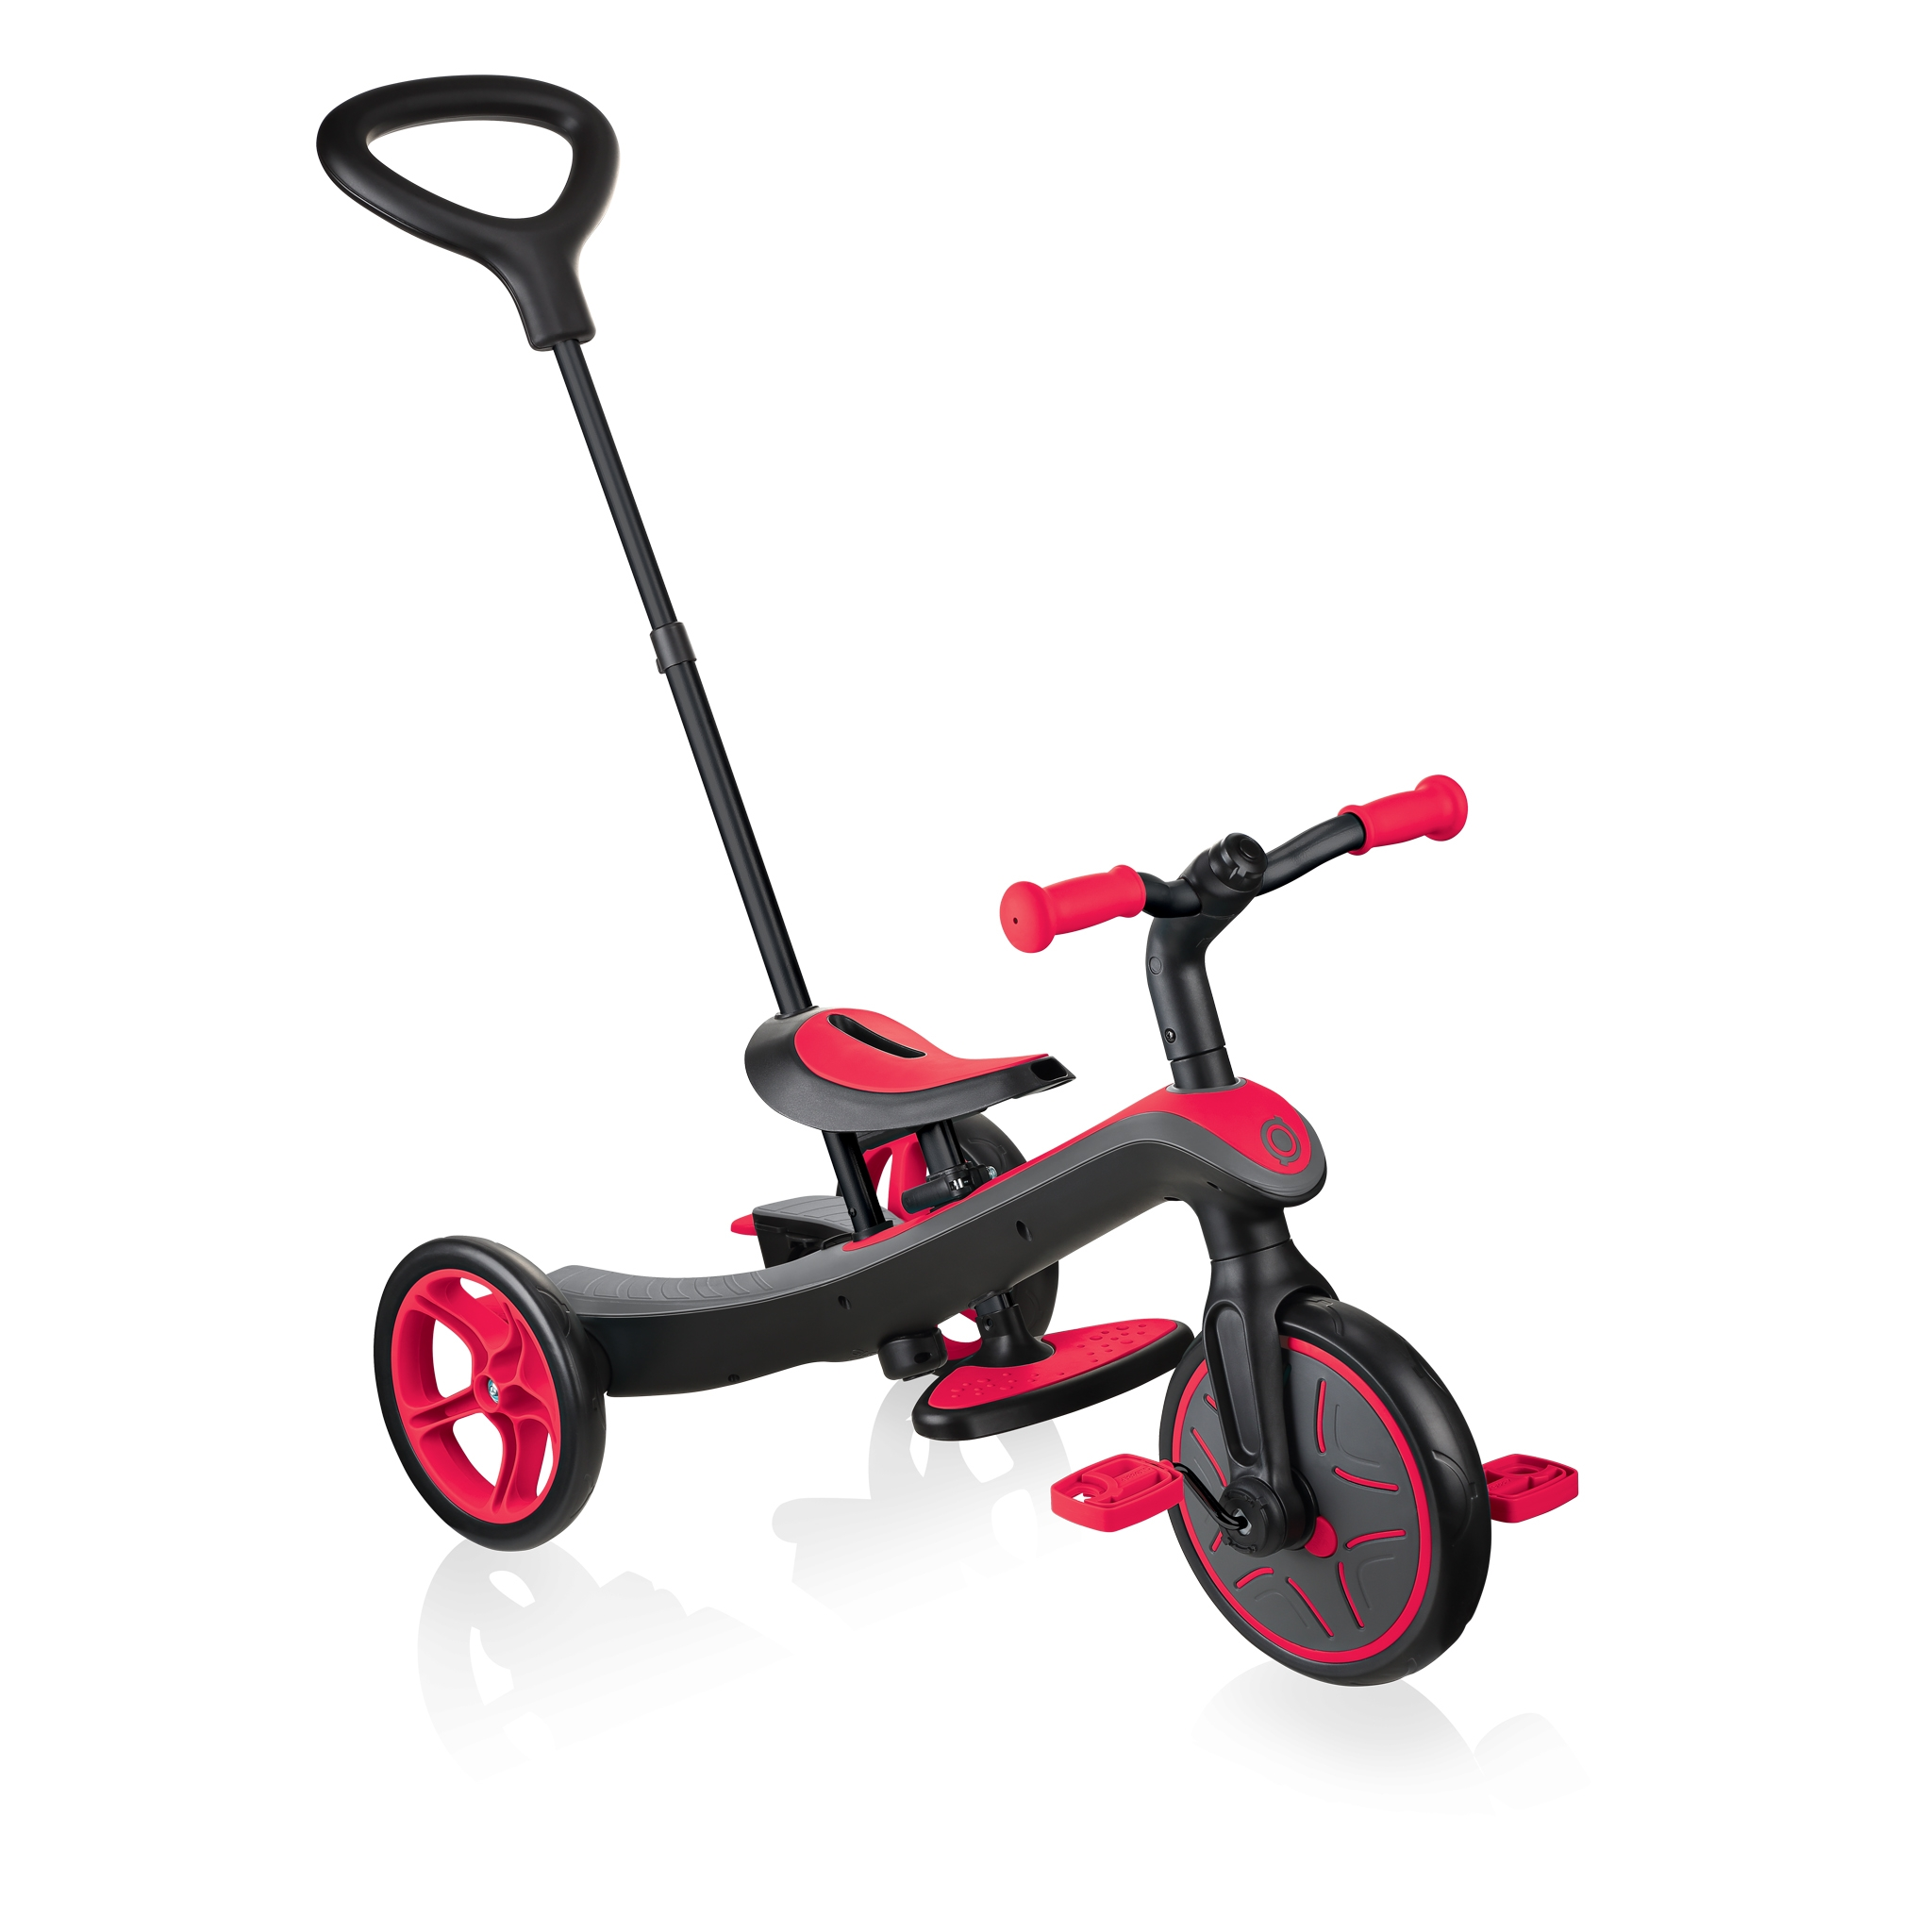 Globber-EXPLORER-TRIKE-4in1-all-in-one-baby-tricycle-and-kids-balance-bike-stage2-guided-trike_new-red